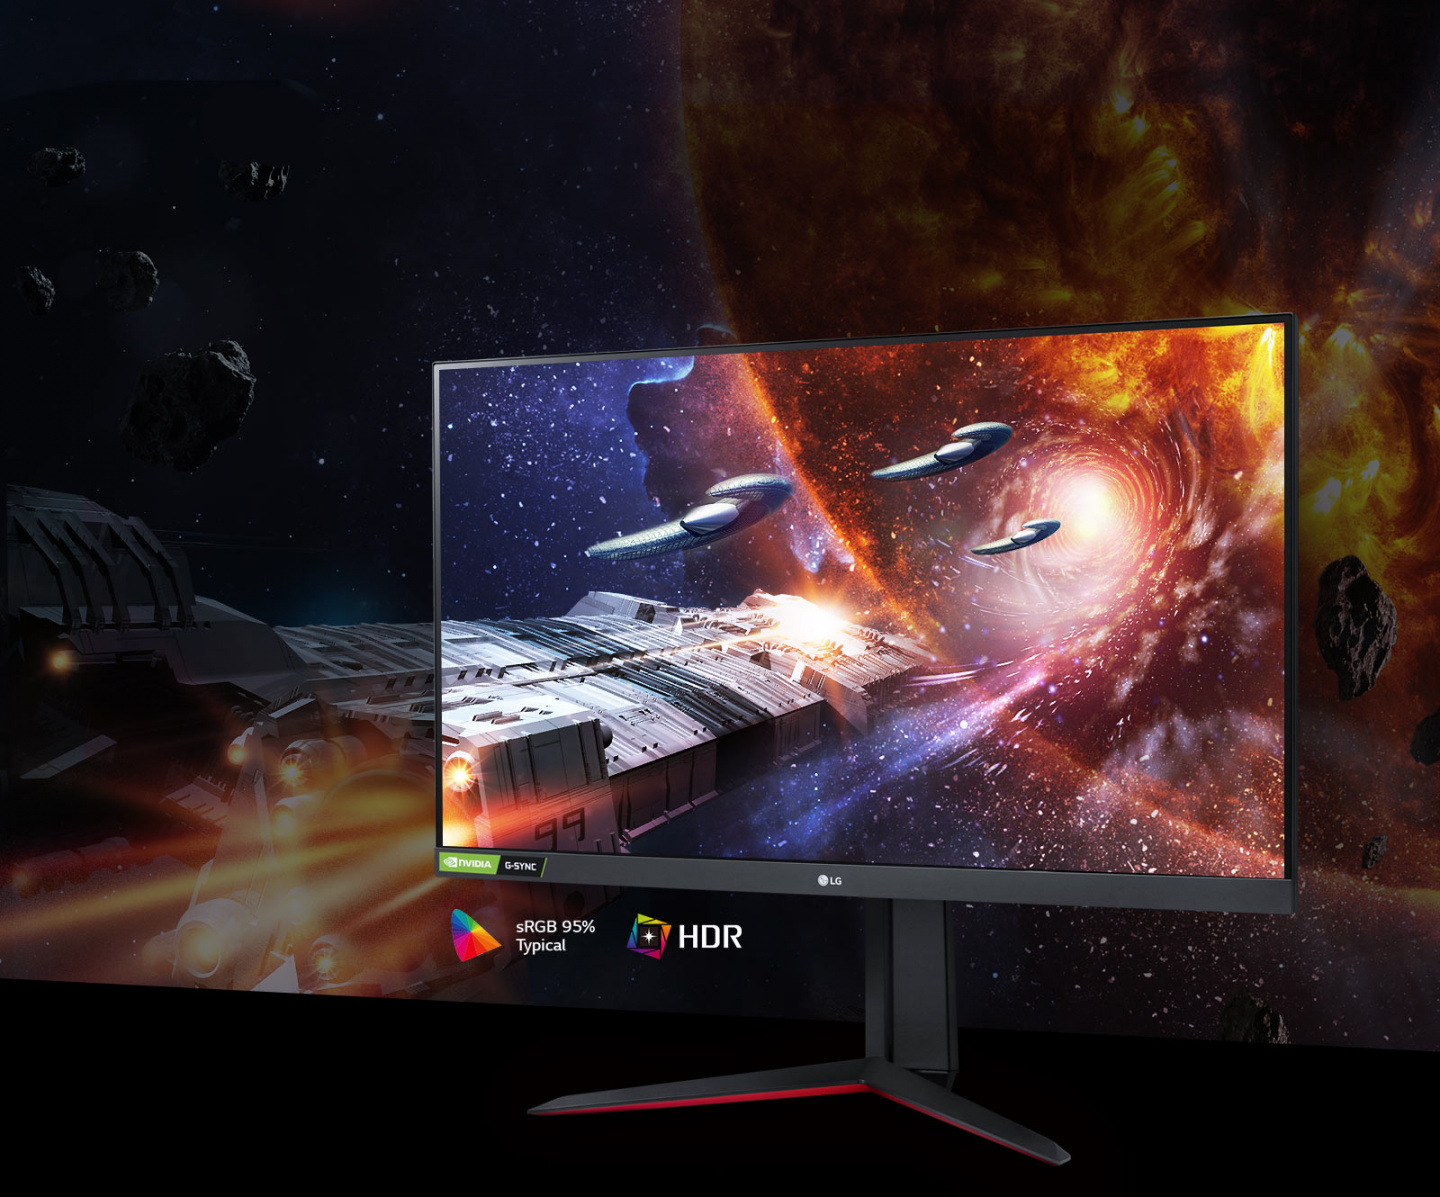 The Gaming Scene in Rich Colors and Contrast on The Monitor Supporting Hdr10 With Srgb 95% (Typ.)